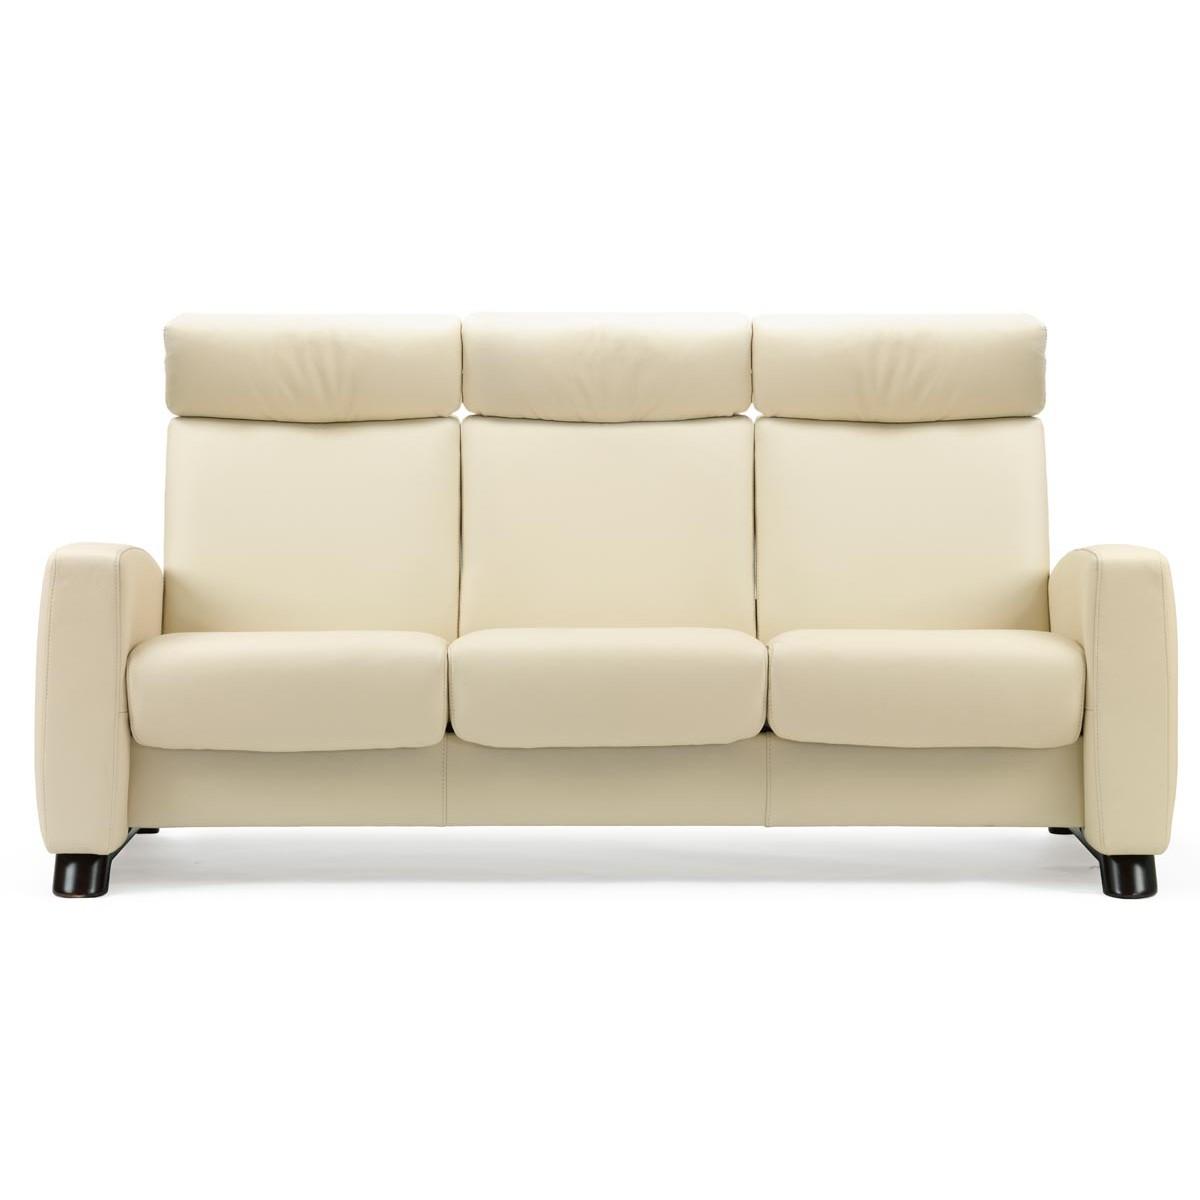 High Back Settee With Arms High Back Tufted Loveseat Trendy Vanves Tufted Settee